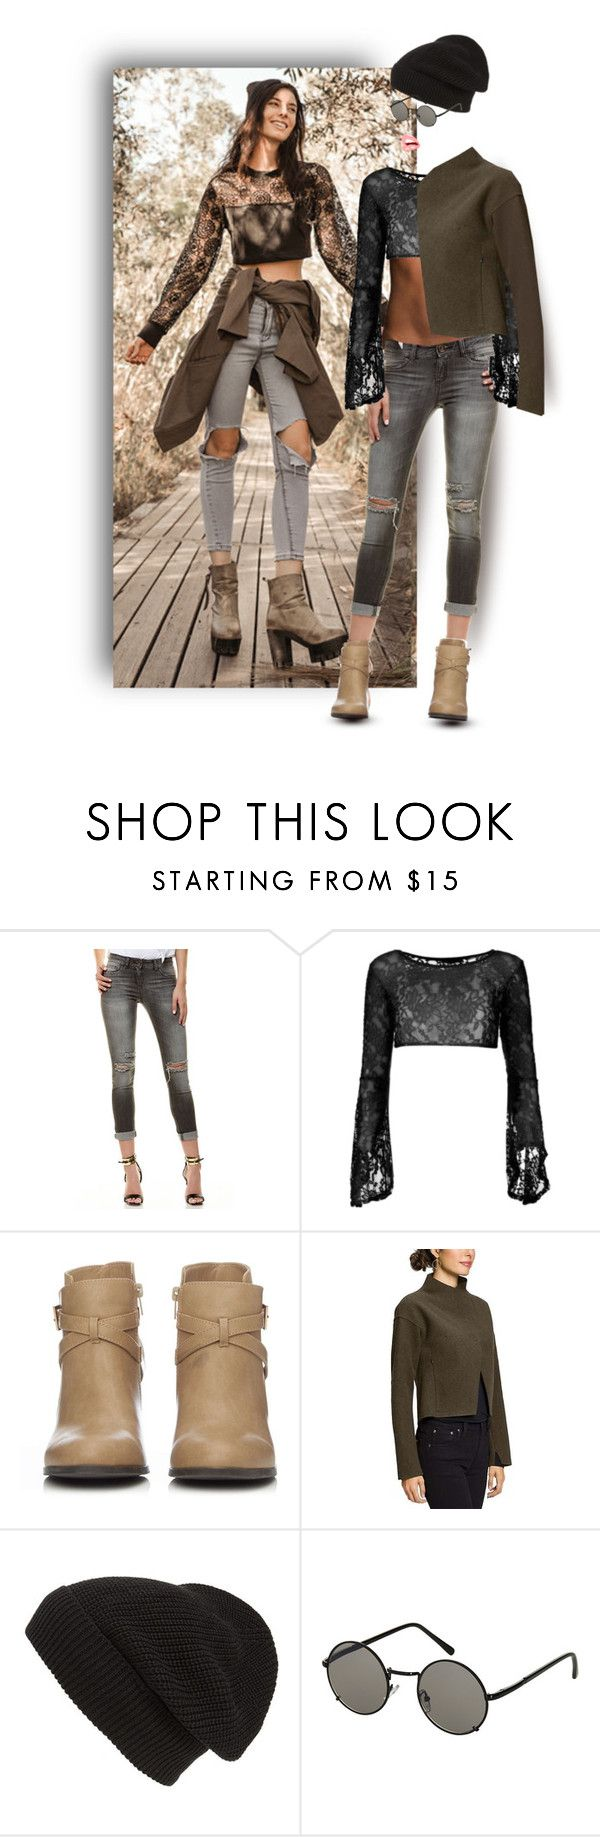 """""""Ripped Jeans."""" by auntiehelen ❤ liked on Polyvore featuring Elisabetta Franchi, Wallis, NAU, Phase 3 and Topshop"""